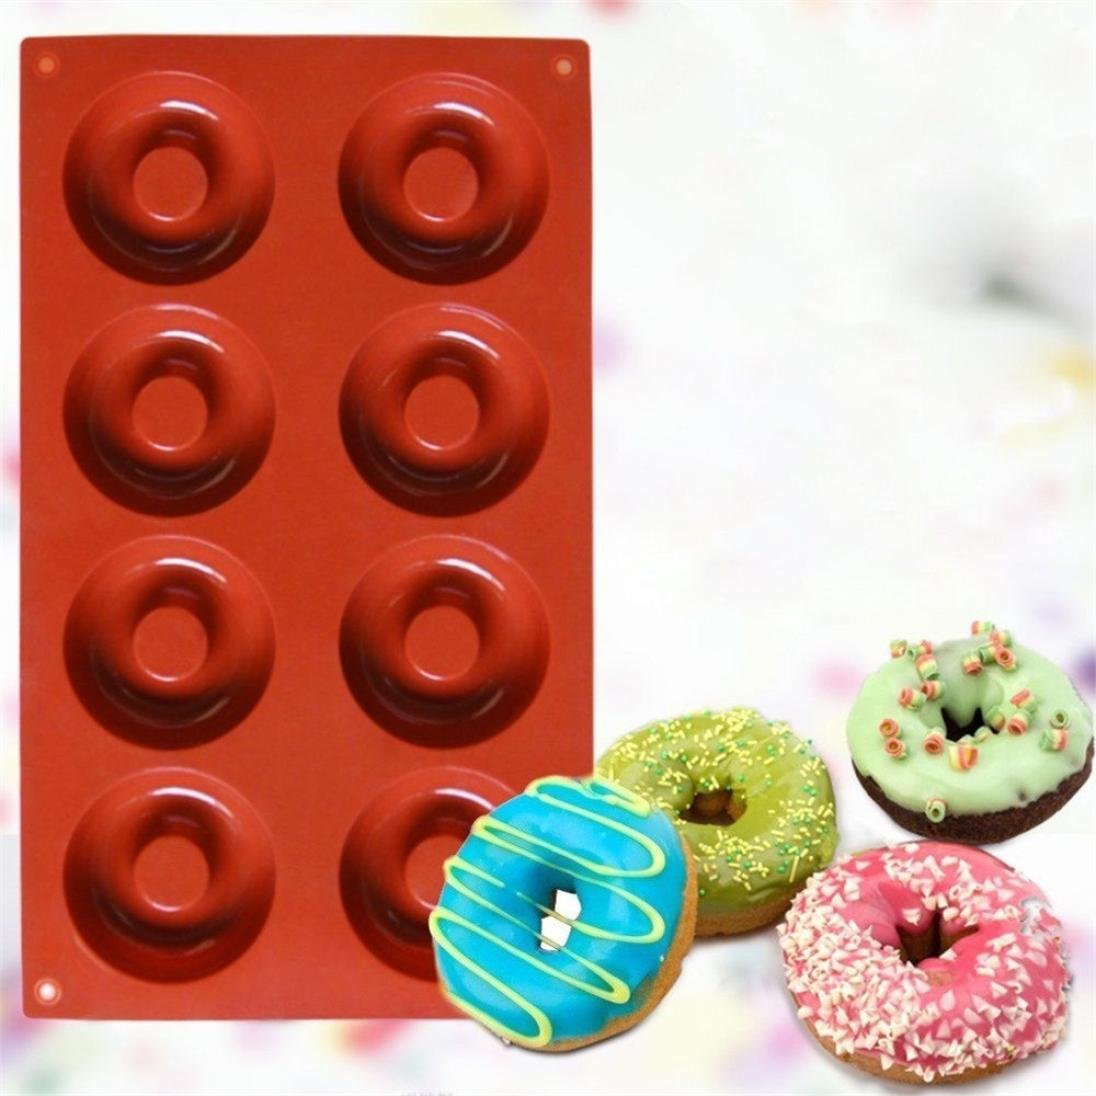 Amazon.com: Gessppo Molde de pastel Silicone Donut Cupcake Mold Muffin Chocolate Cake Candy Cookie Baking Mould Pan Kitchen Tool Baking Tool for Home: Home ...